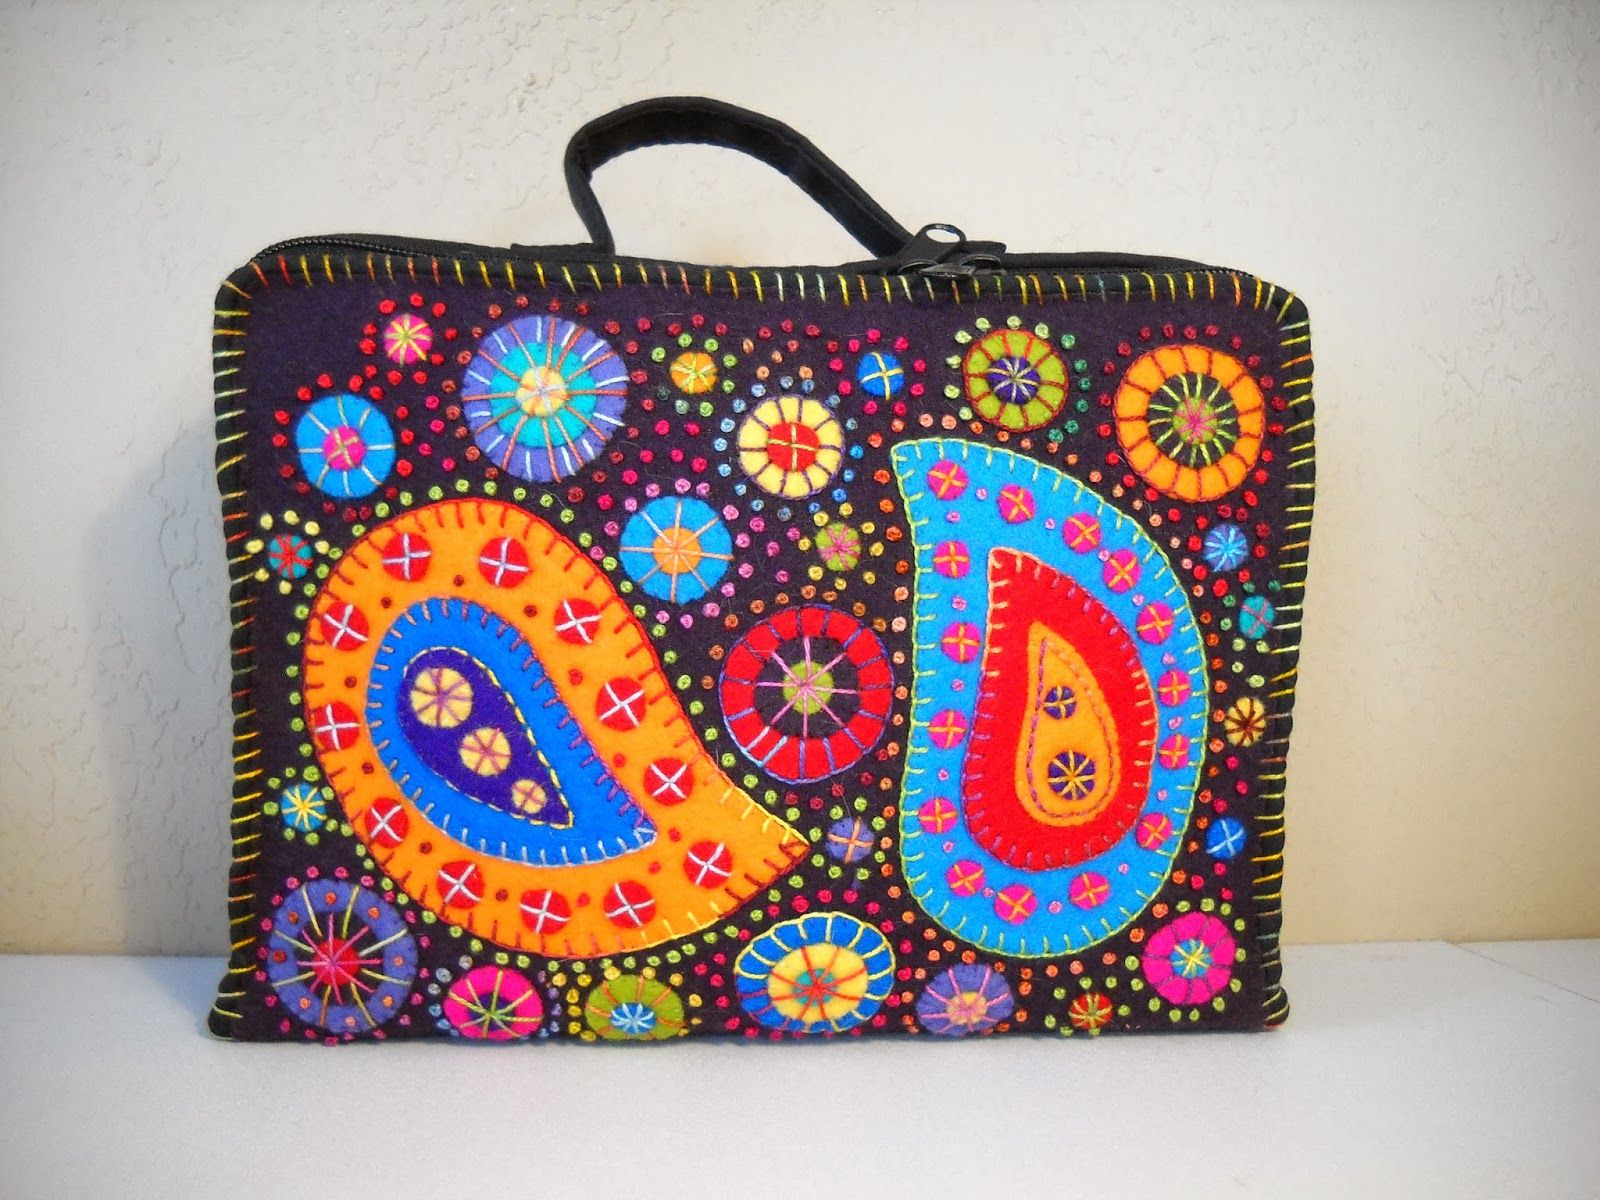 Sewing Kit Beautifully Decorated In Felt